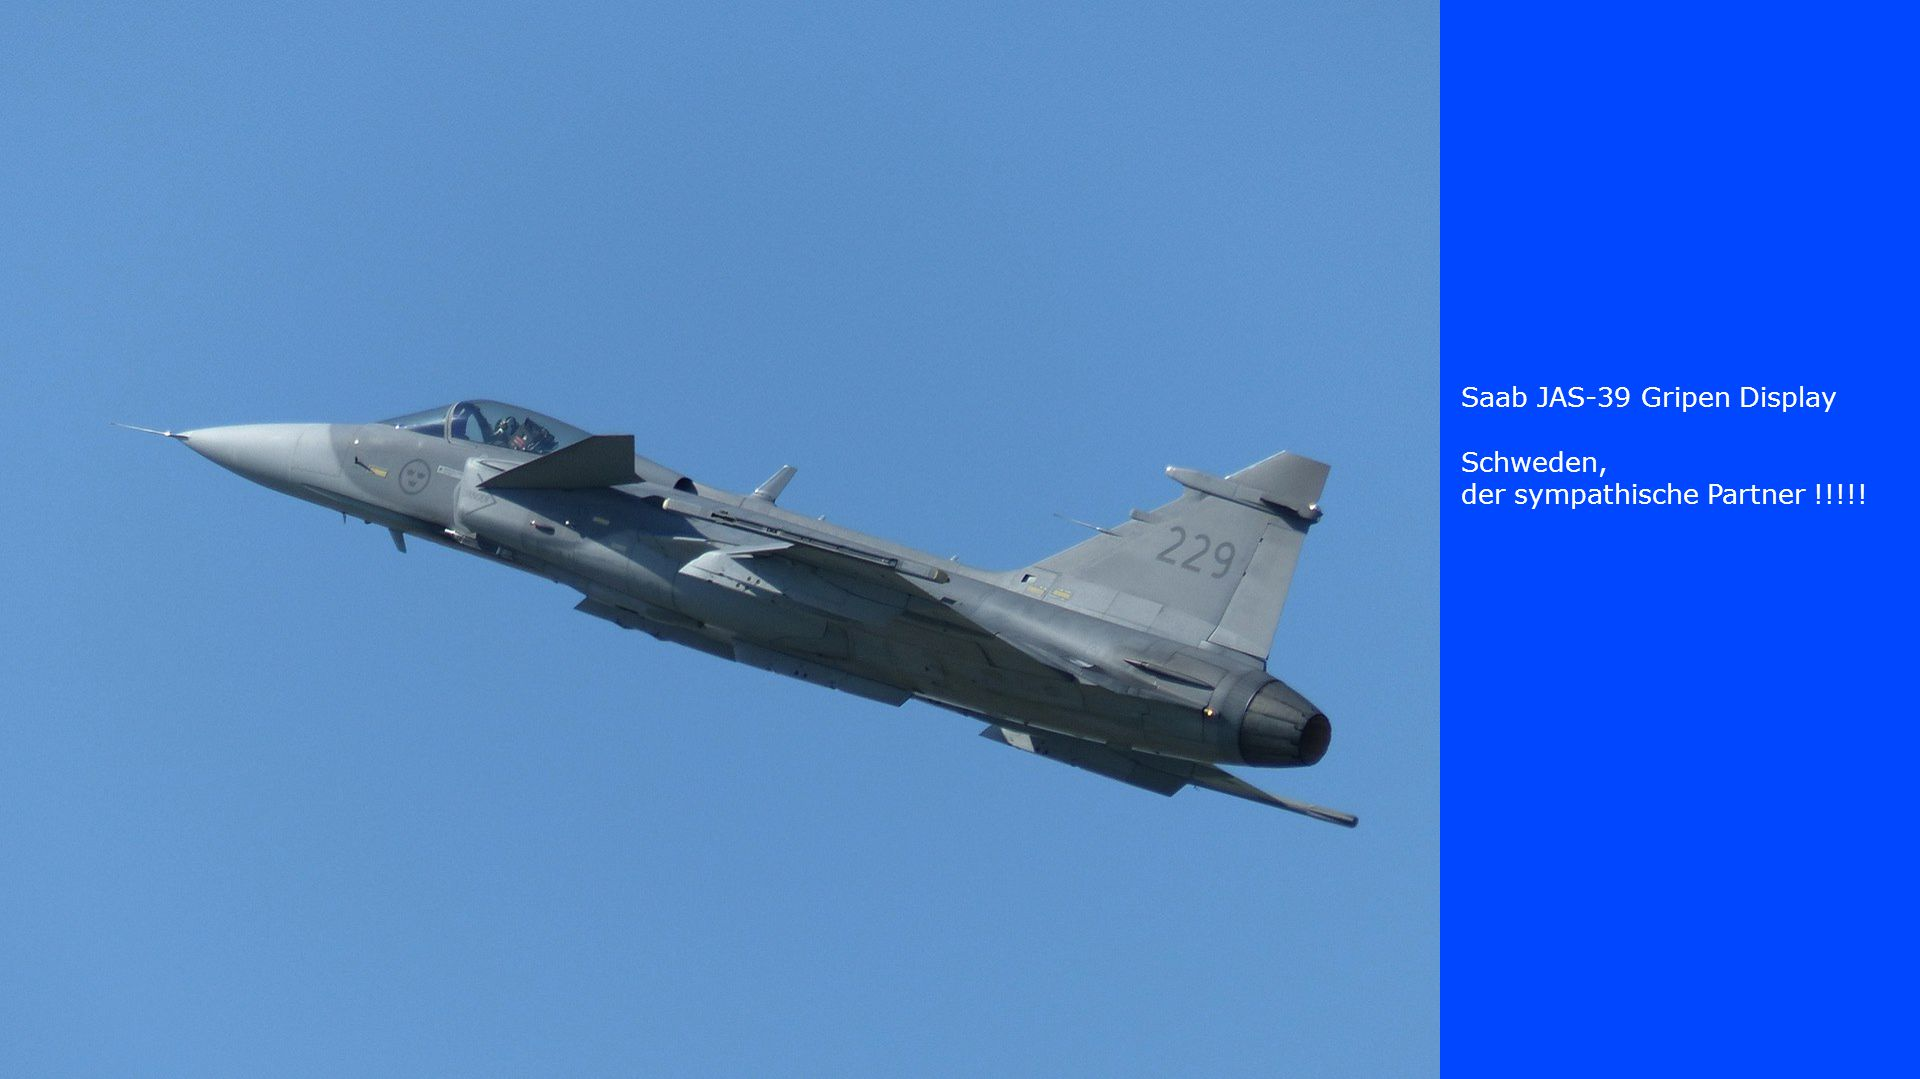 Saab JAS-39 Gripen Display